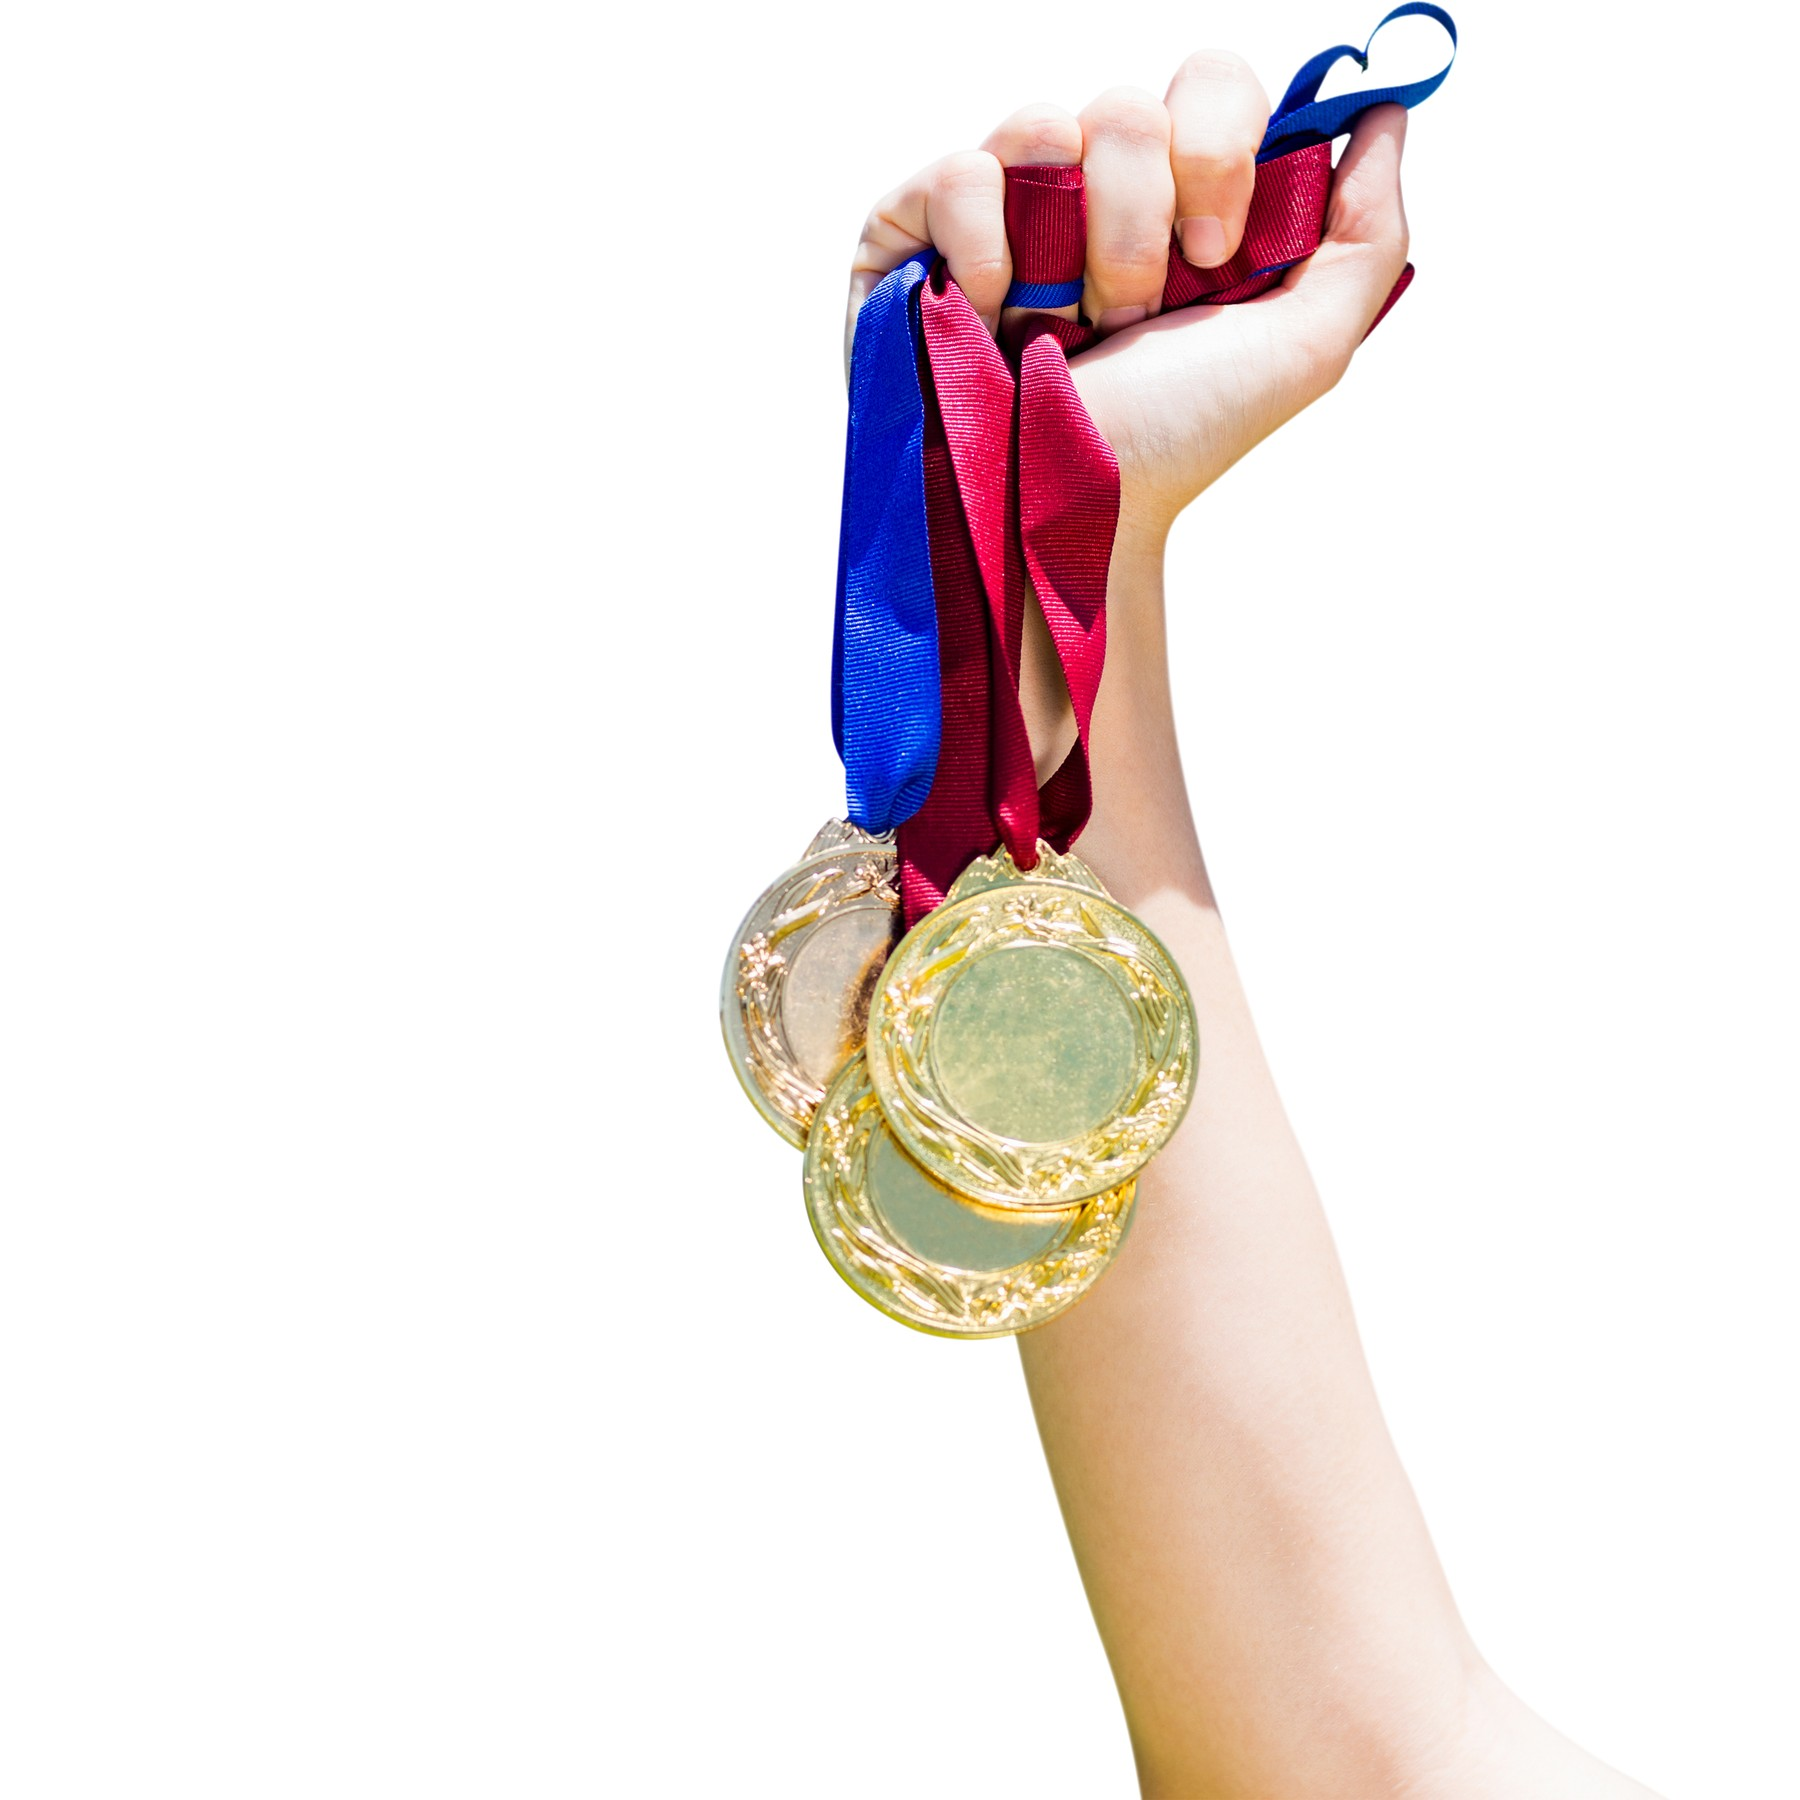 Hand holding three medals on white background, Image: 287922744, License: Royalty-free, Restrictions: , Model Release: yes, Credit line: Profimedia, Wavebreak